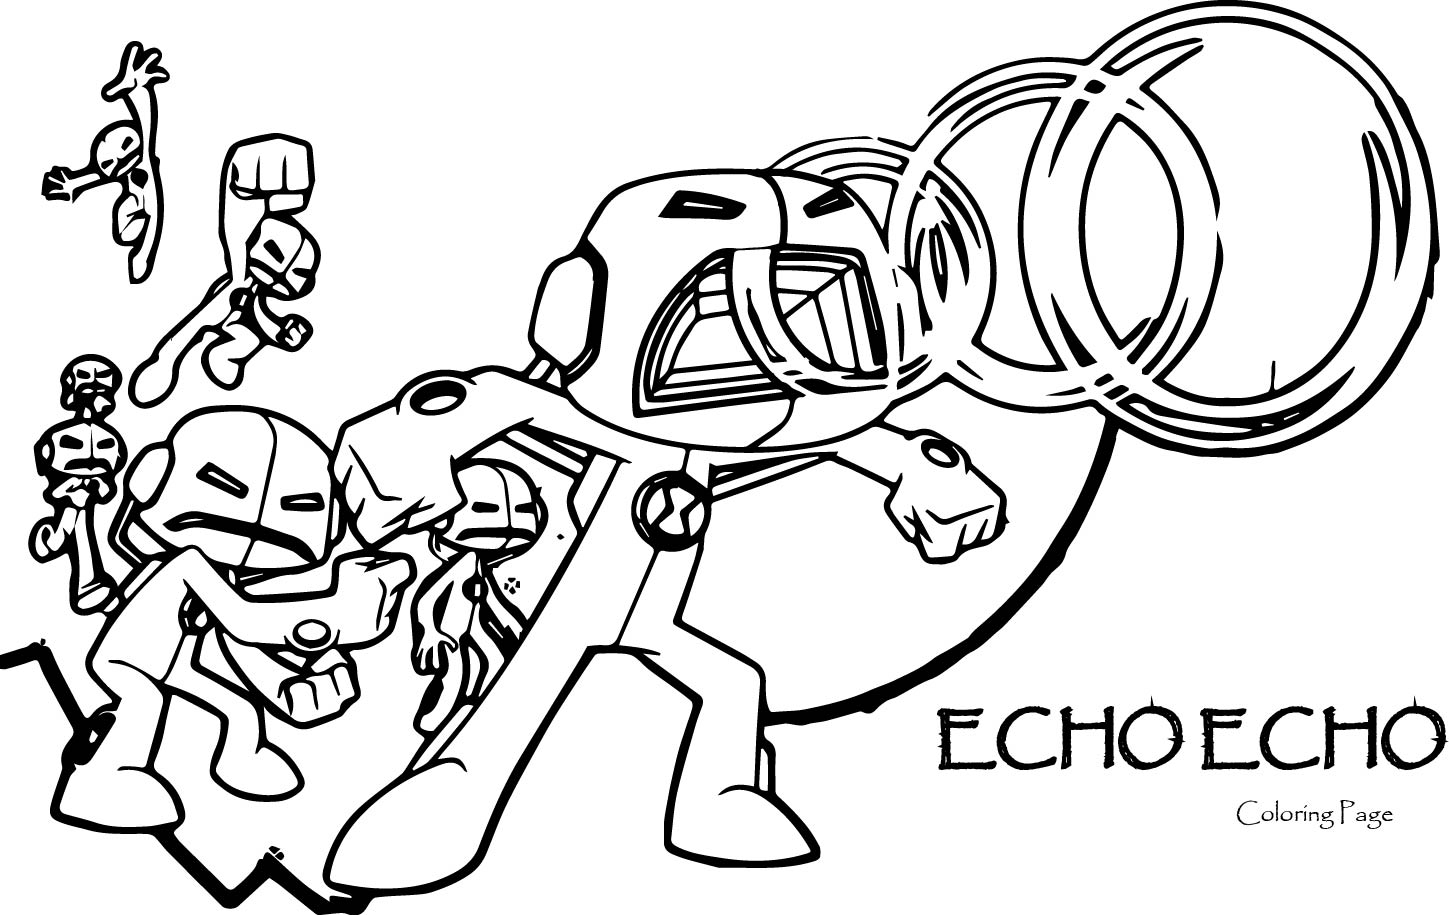 Echo echo ben 10 alien force coloring page for Coloring pages of ben 10 aliens